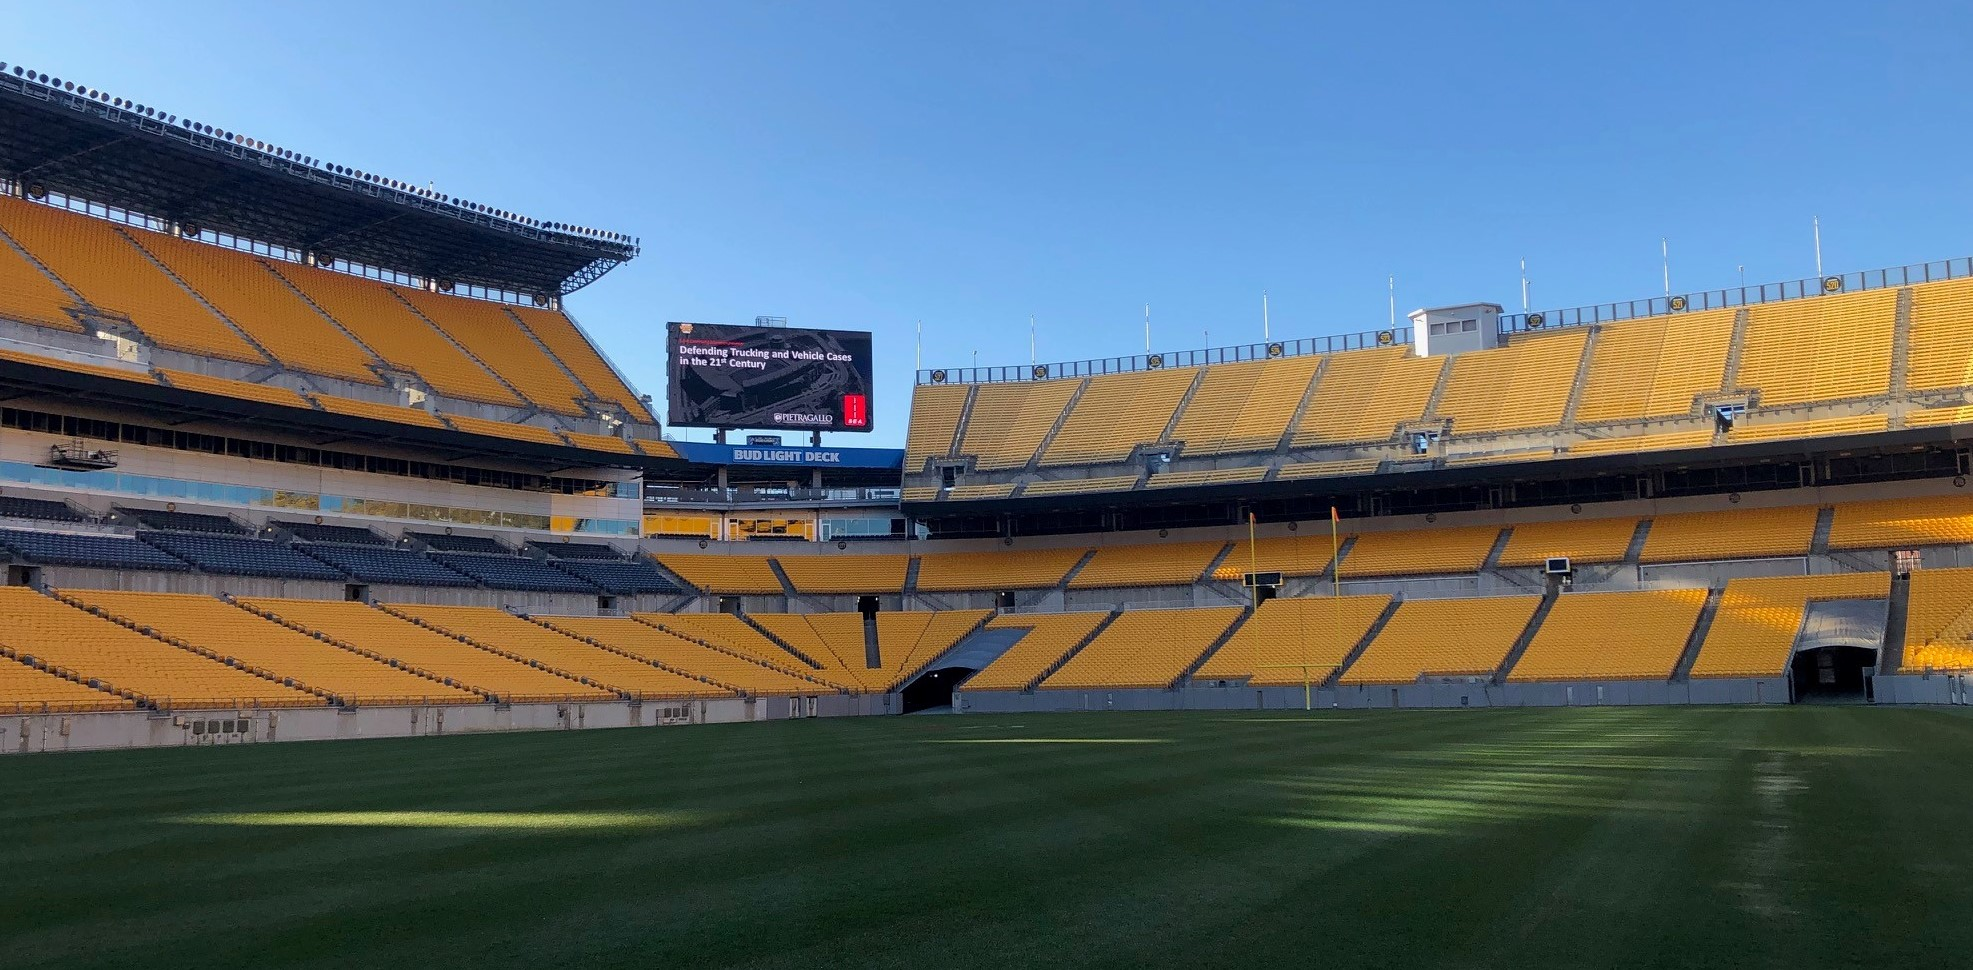 S-E-A Hosts Educational Event at Heinz Field